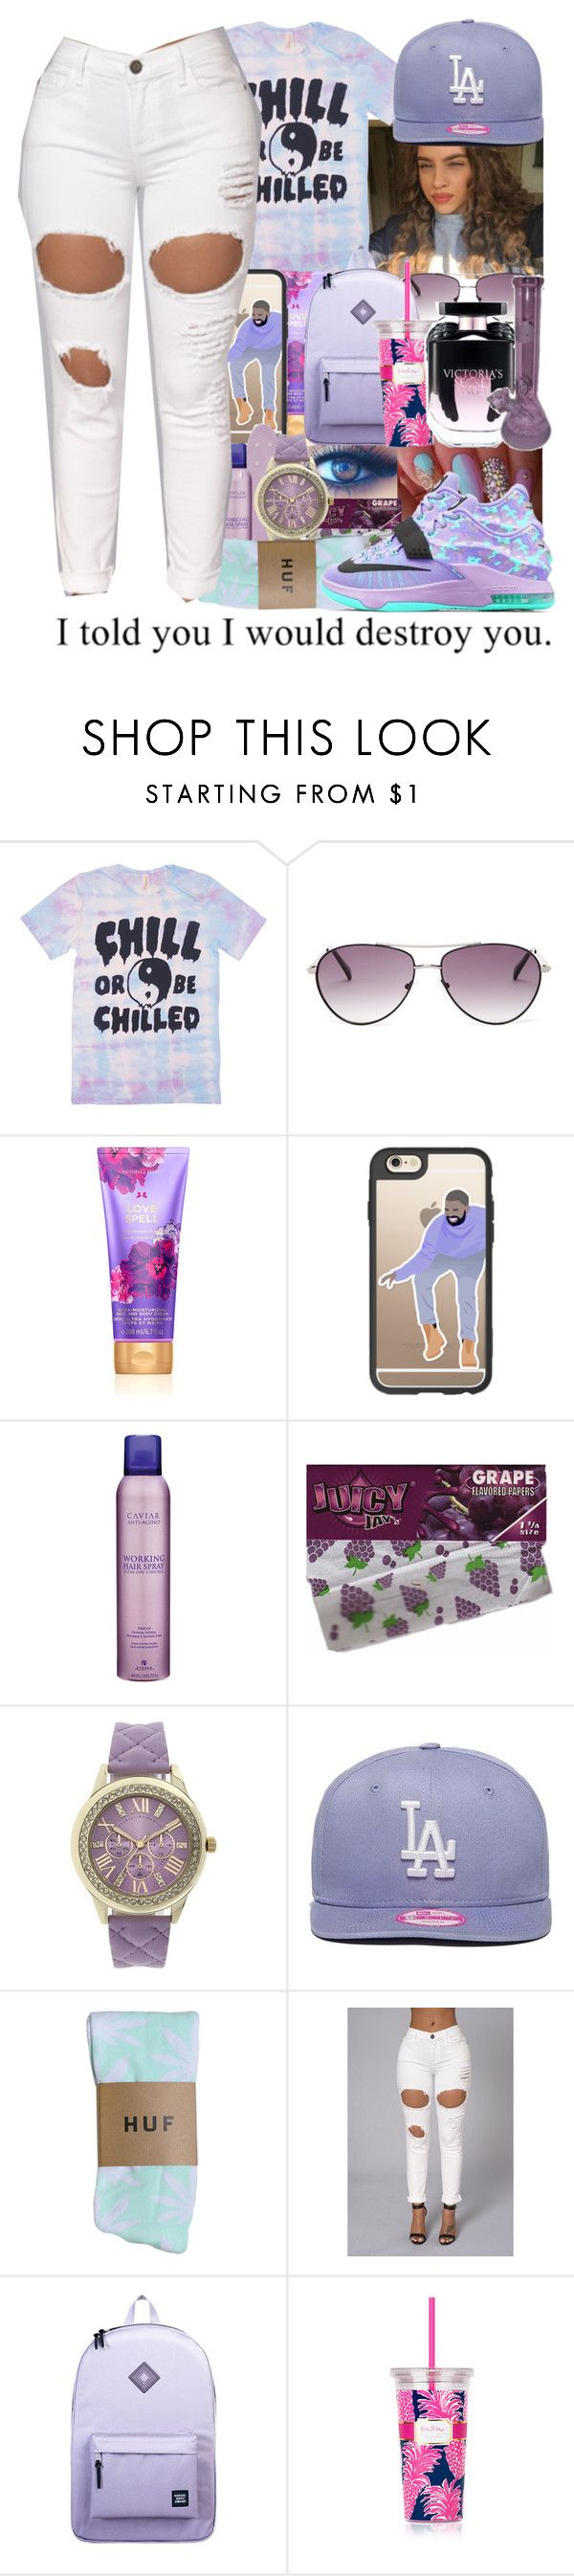 """""""should i start making sets like this, or the way i am now?"""" by wma0411 ❤ liked on Polyvore featuring BCBGMAXAZRIA, Casetify, Alterna, Geneva, New Era, NIKE, Herschel Supply Co., Lilly Pulitzer, Victoria's Secret and Hello Kitty"""